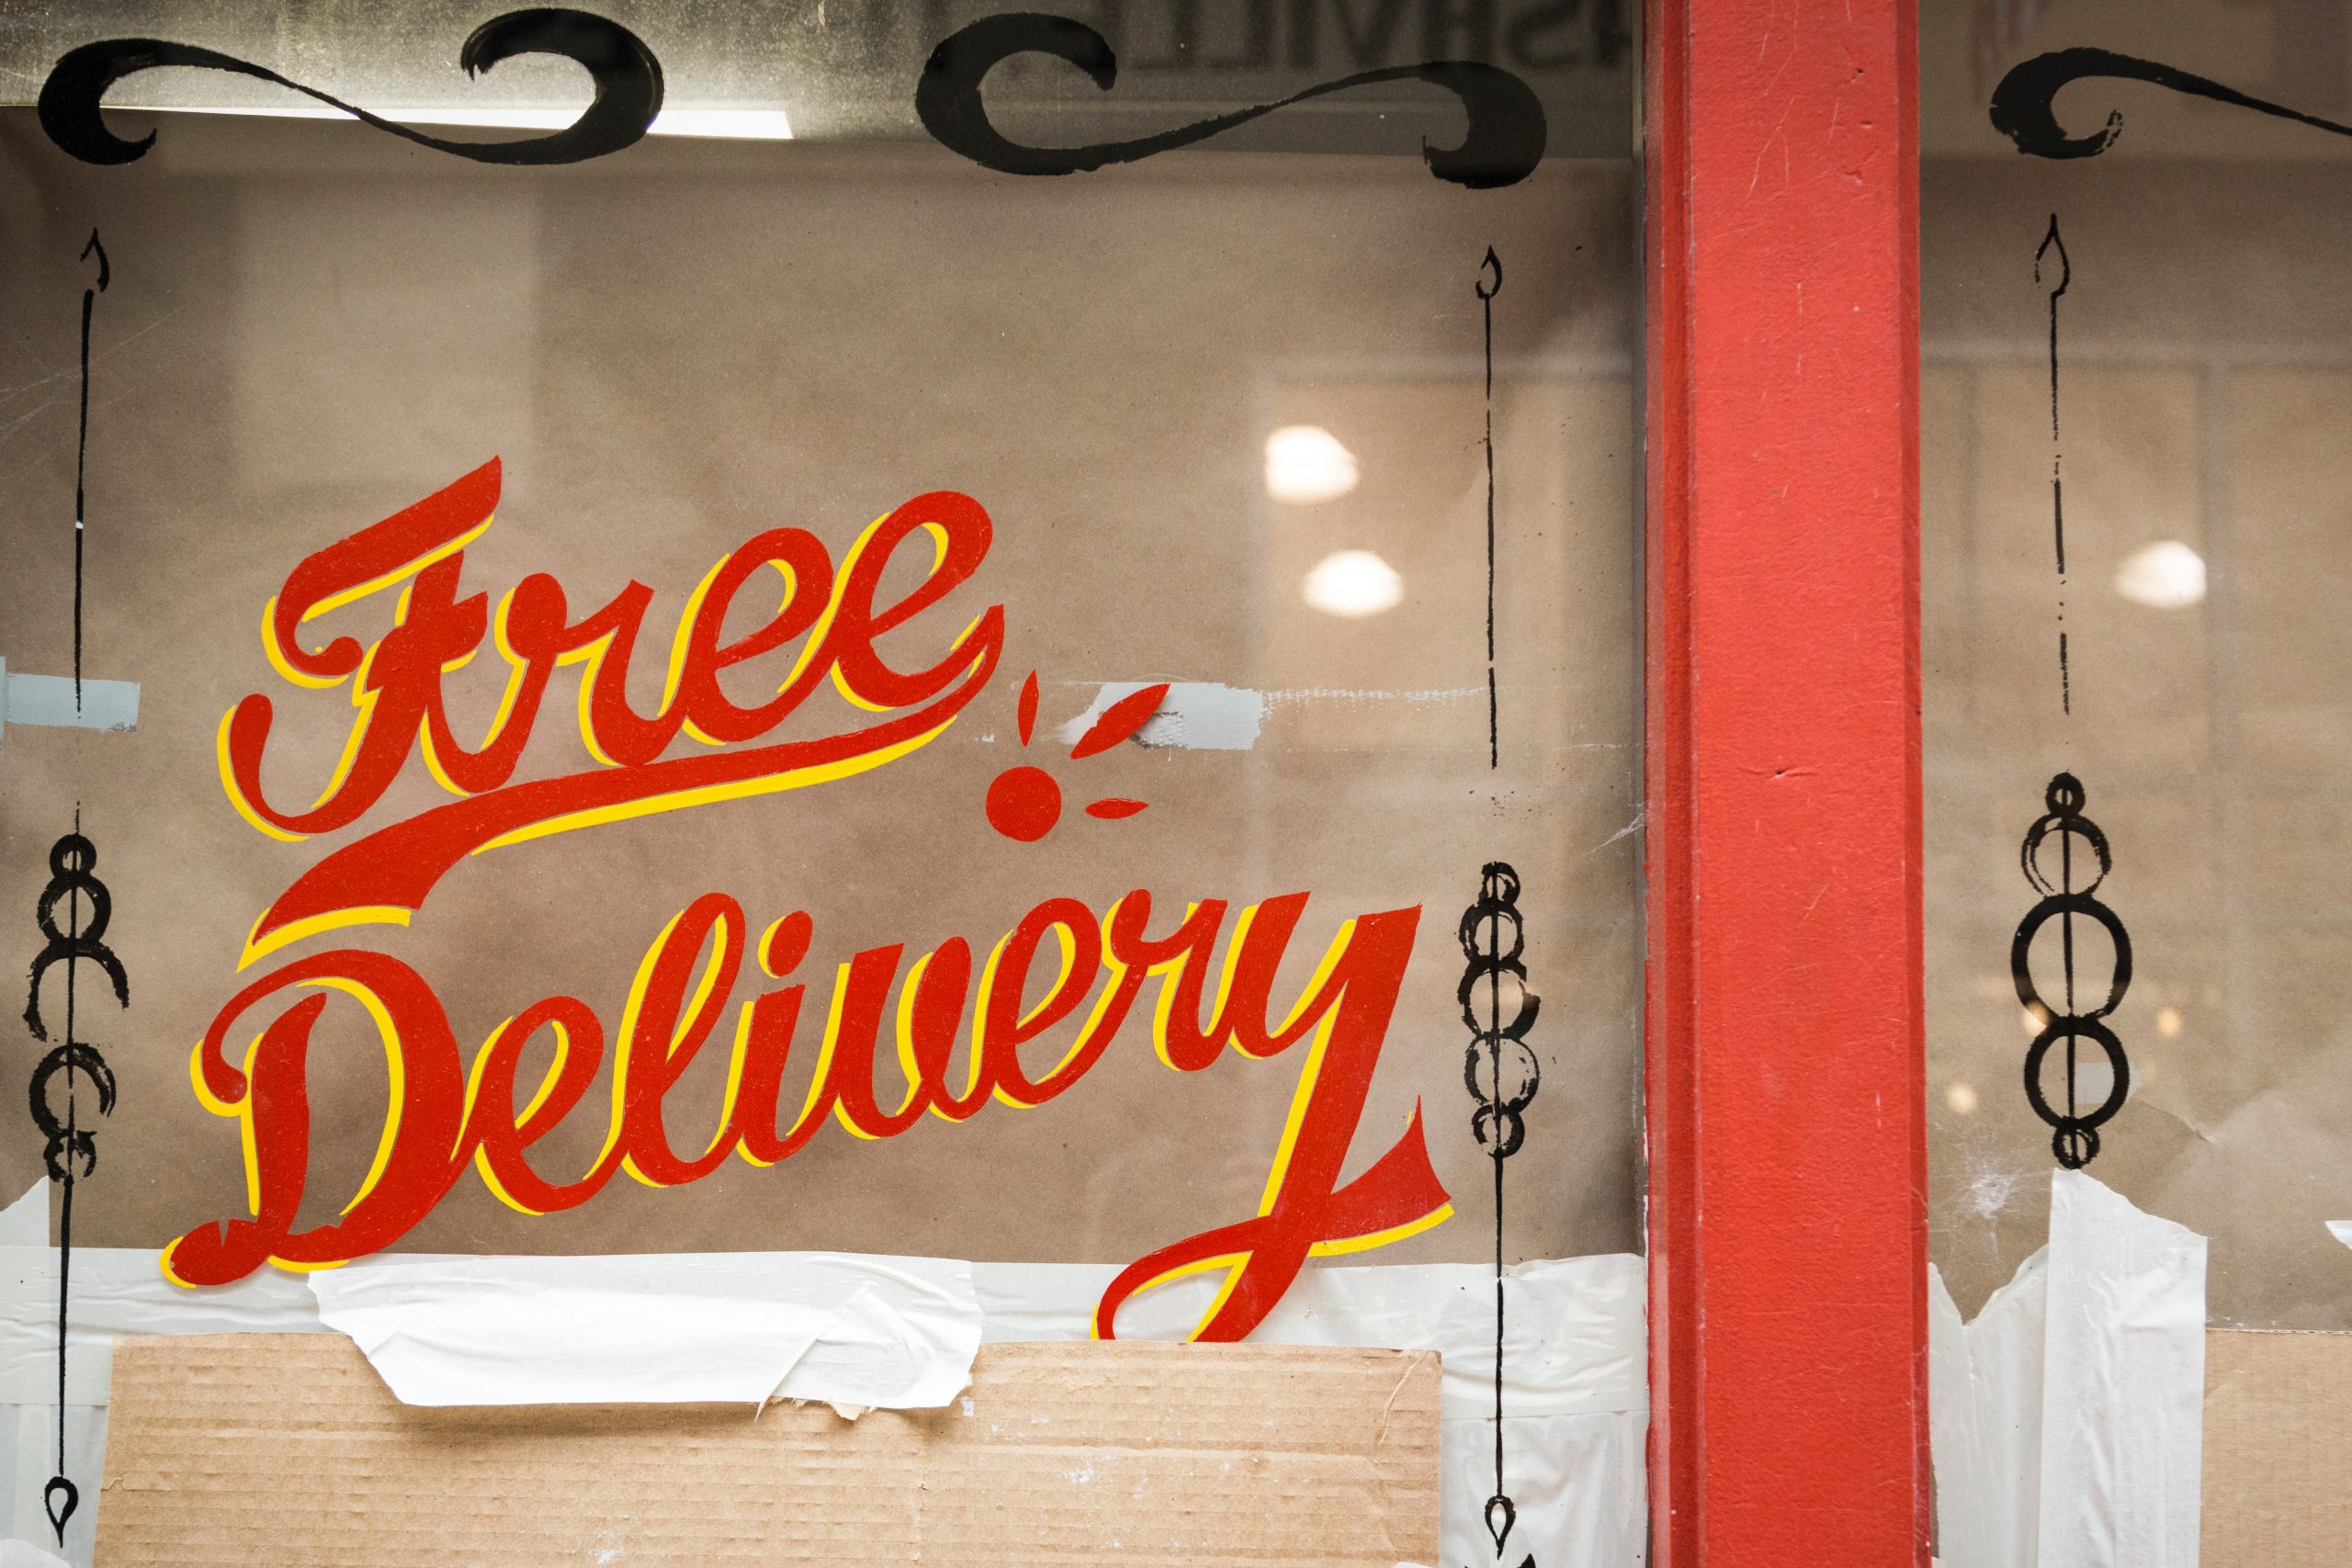 Free delivery at Chaparral Pharmacy